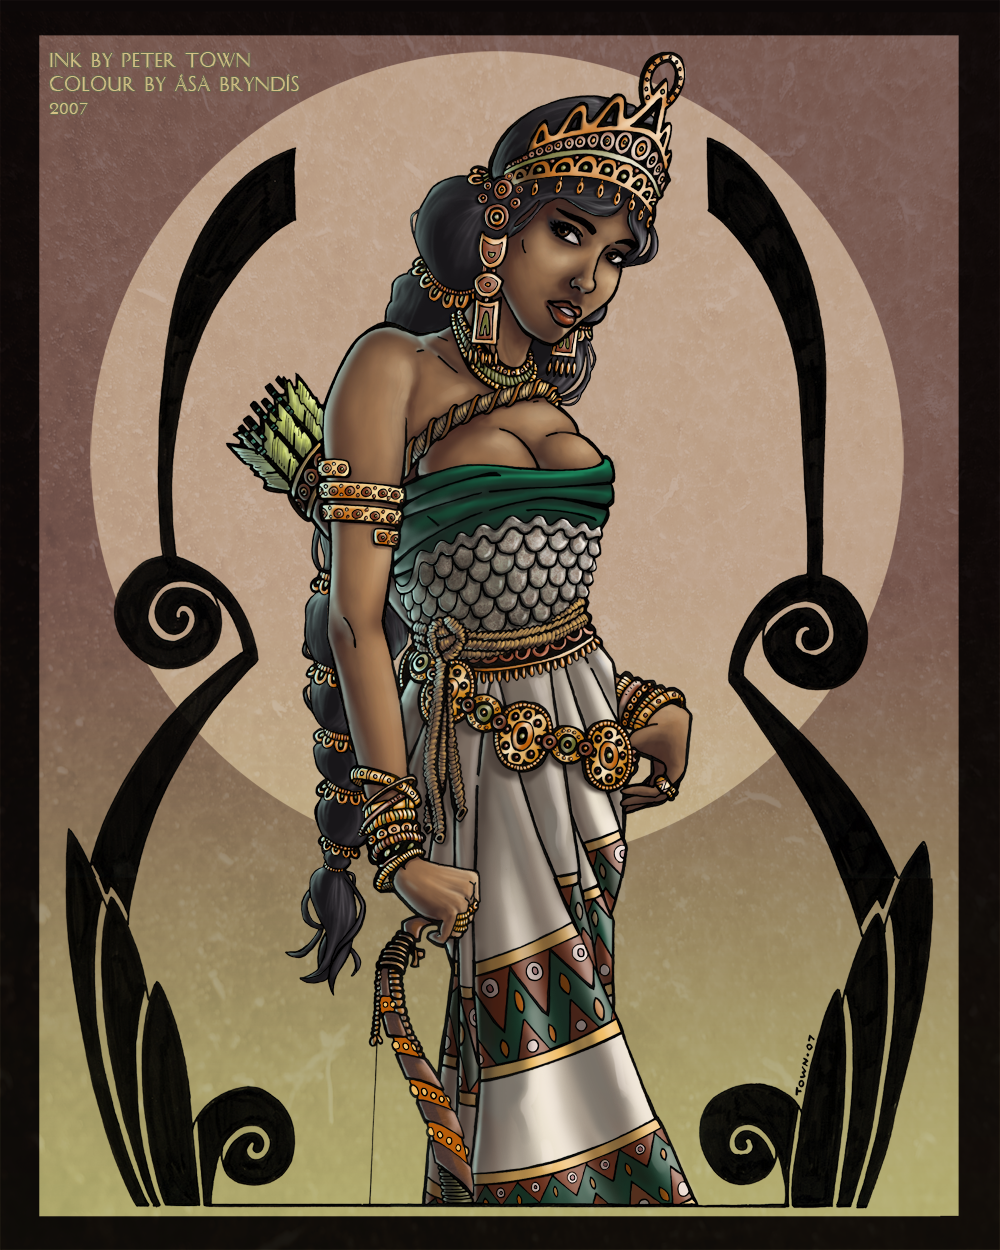 Collab: Zenobia by asa-bryndis